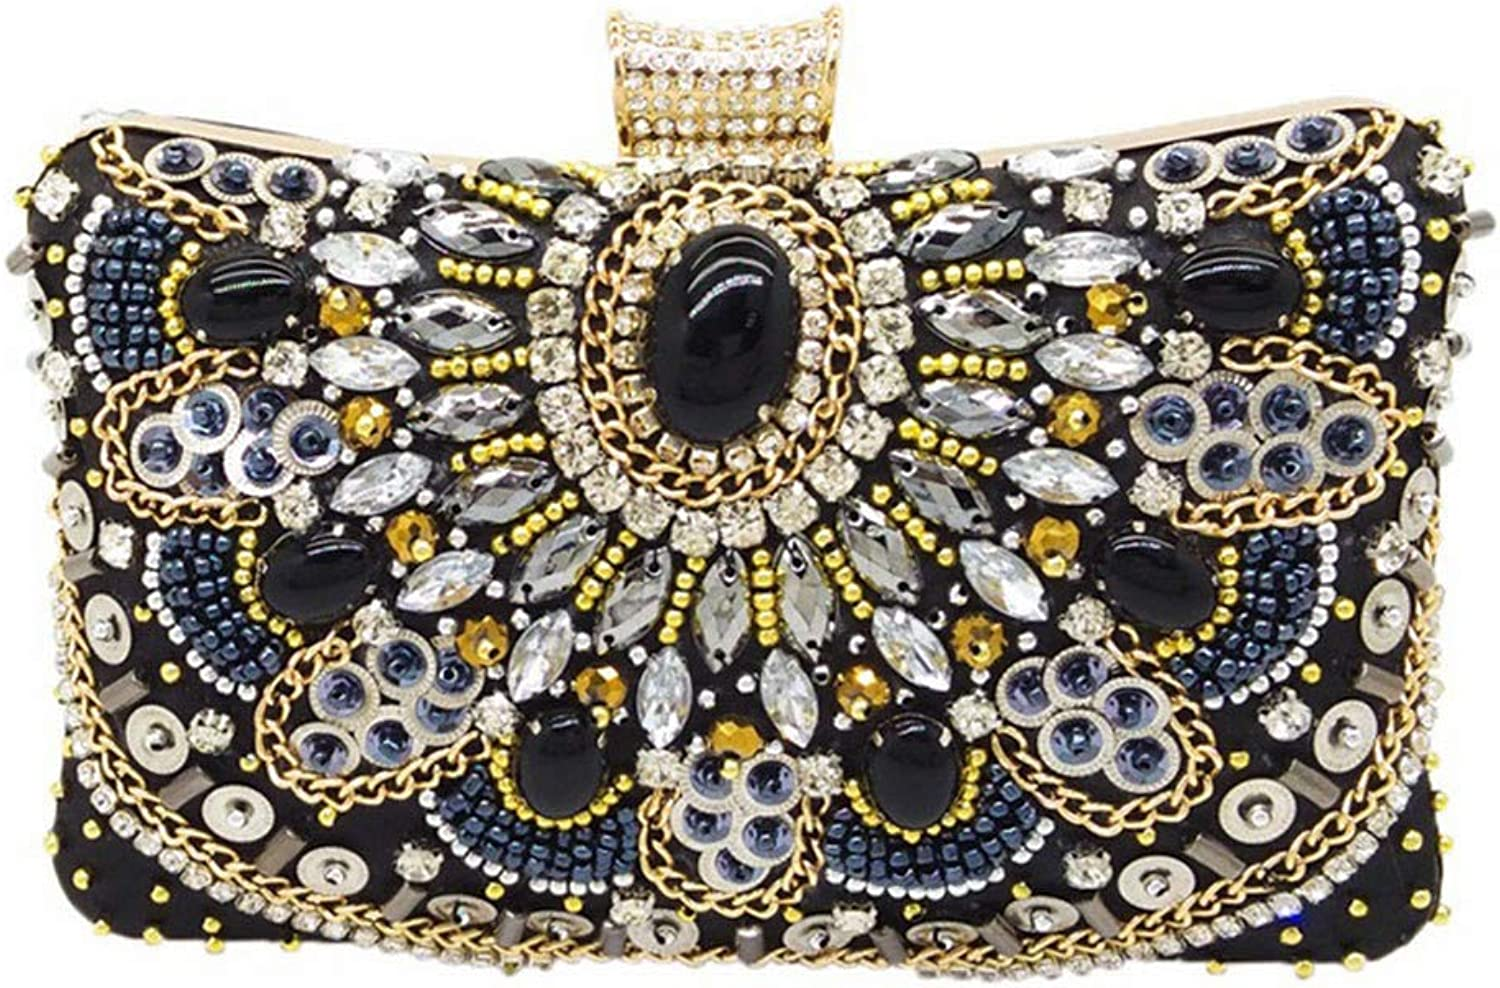 ASHIJIN Vintage Woman Black Beaded Clutch, Handbags for Women, Metal Case Clutches Wedding Party Handbags Purses